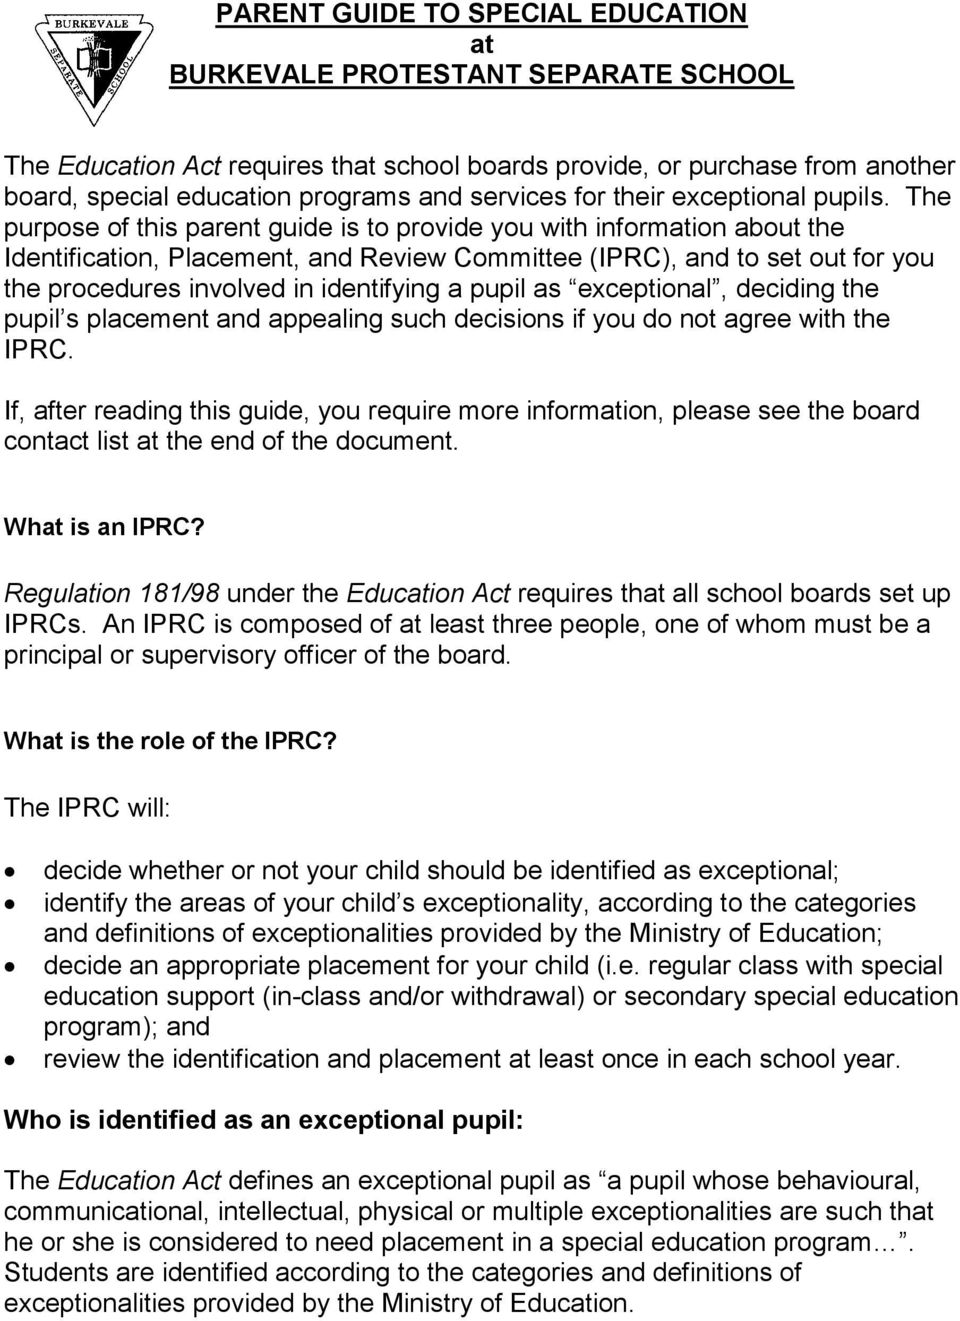 The purpose of this parent guide is to provide you with information about the Identification, Placement, and Review Committee (IPRC), and to set out for you the procedures involved in identifying a